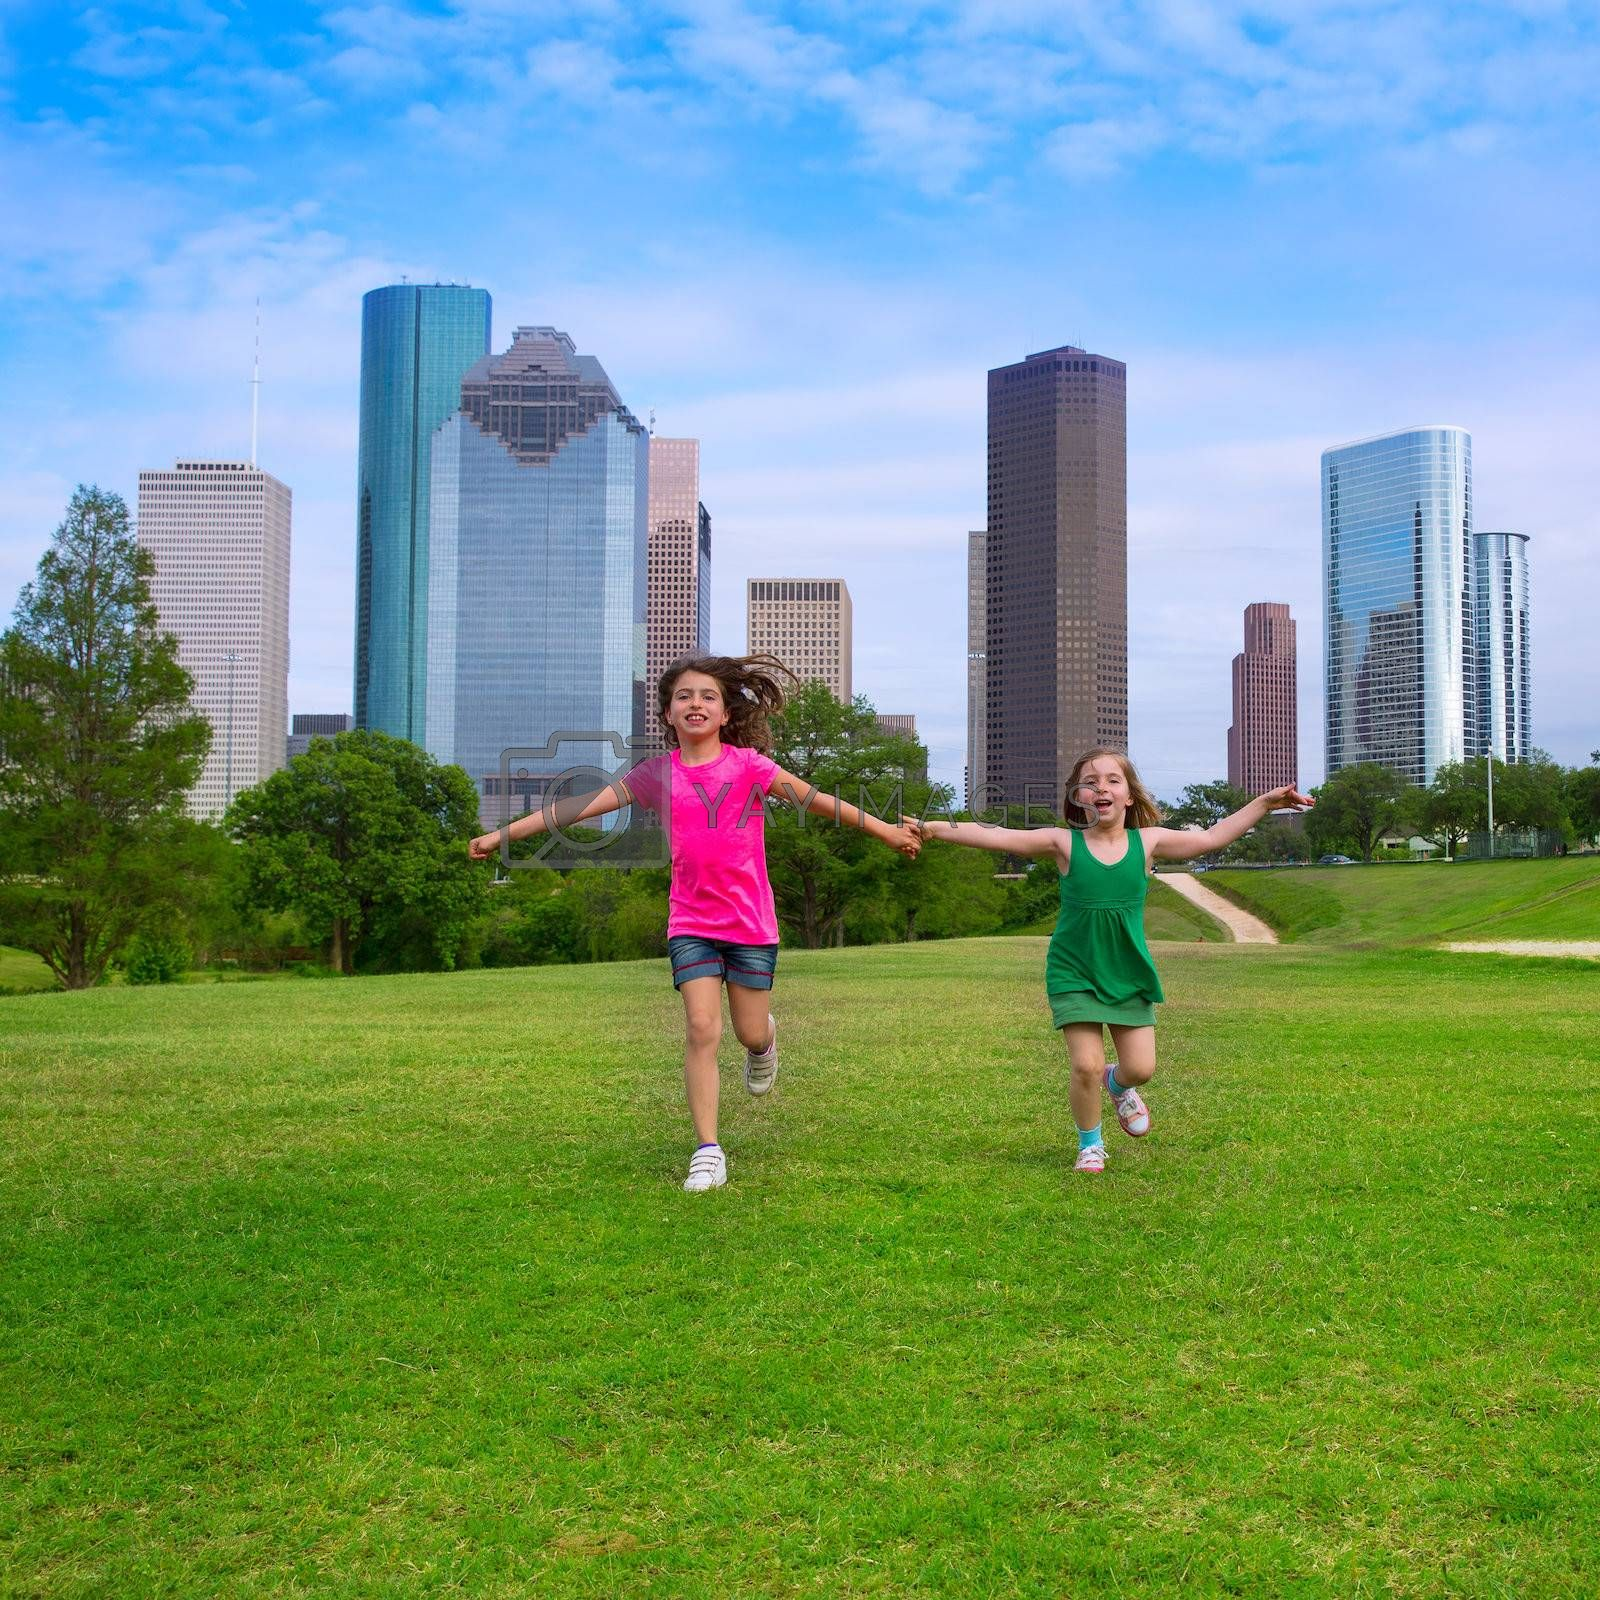 Two sister girls friends running holding hand in urban modern skyline on grass lawn